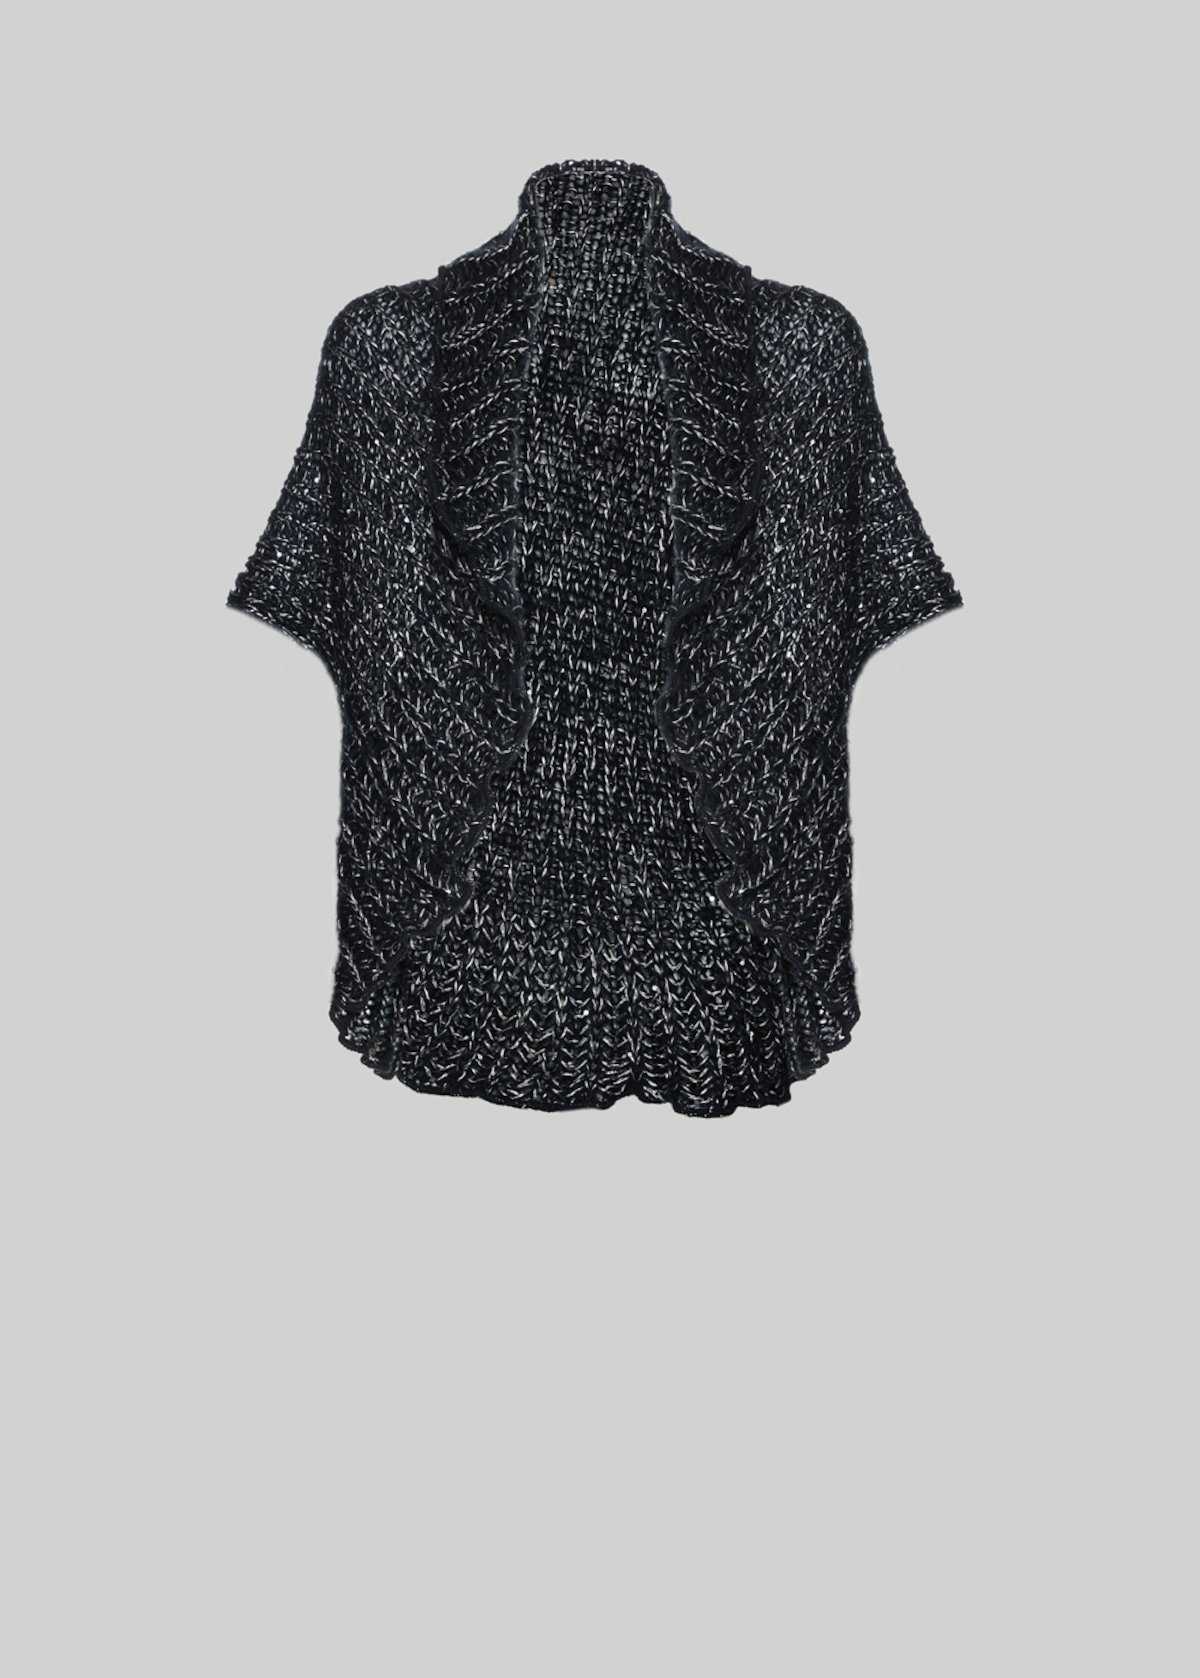 Clea knit shrug with sequins detail - Dark Blue / Silver